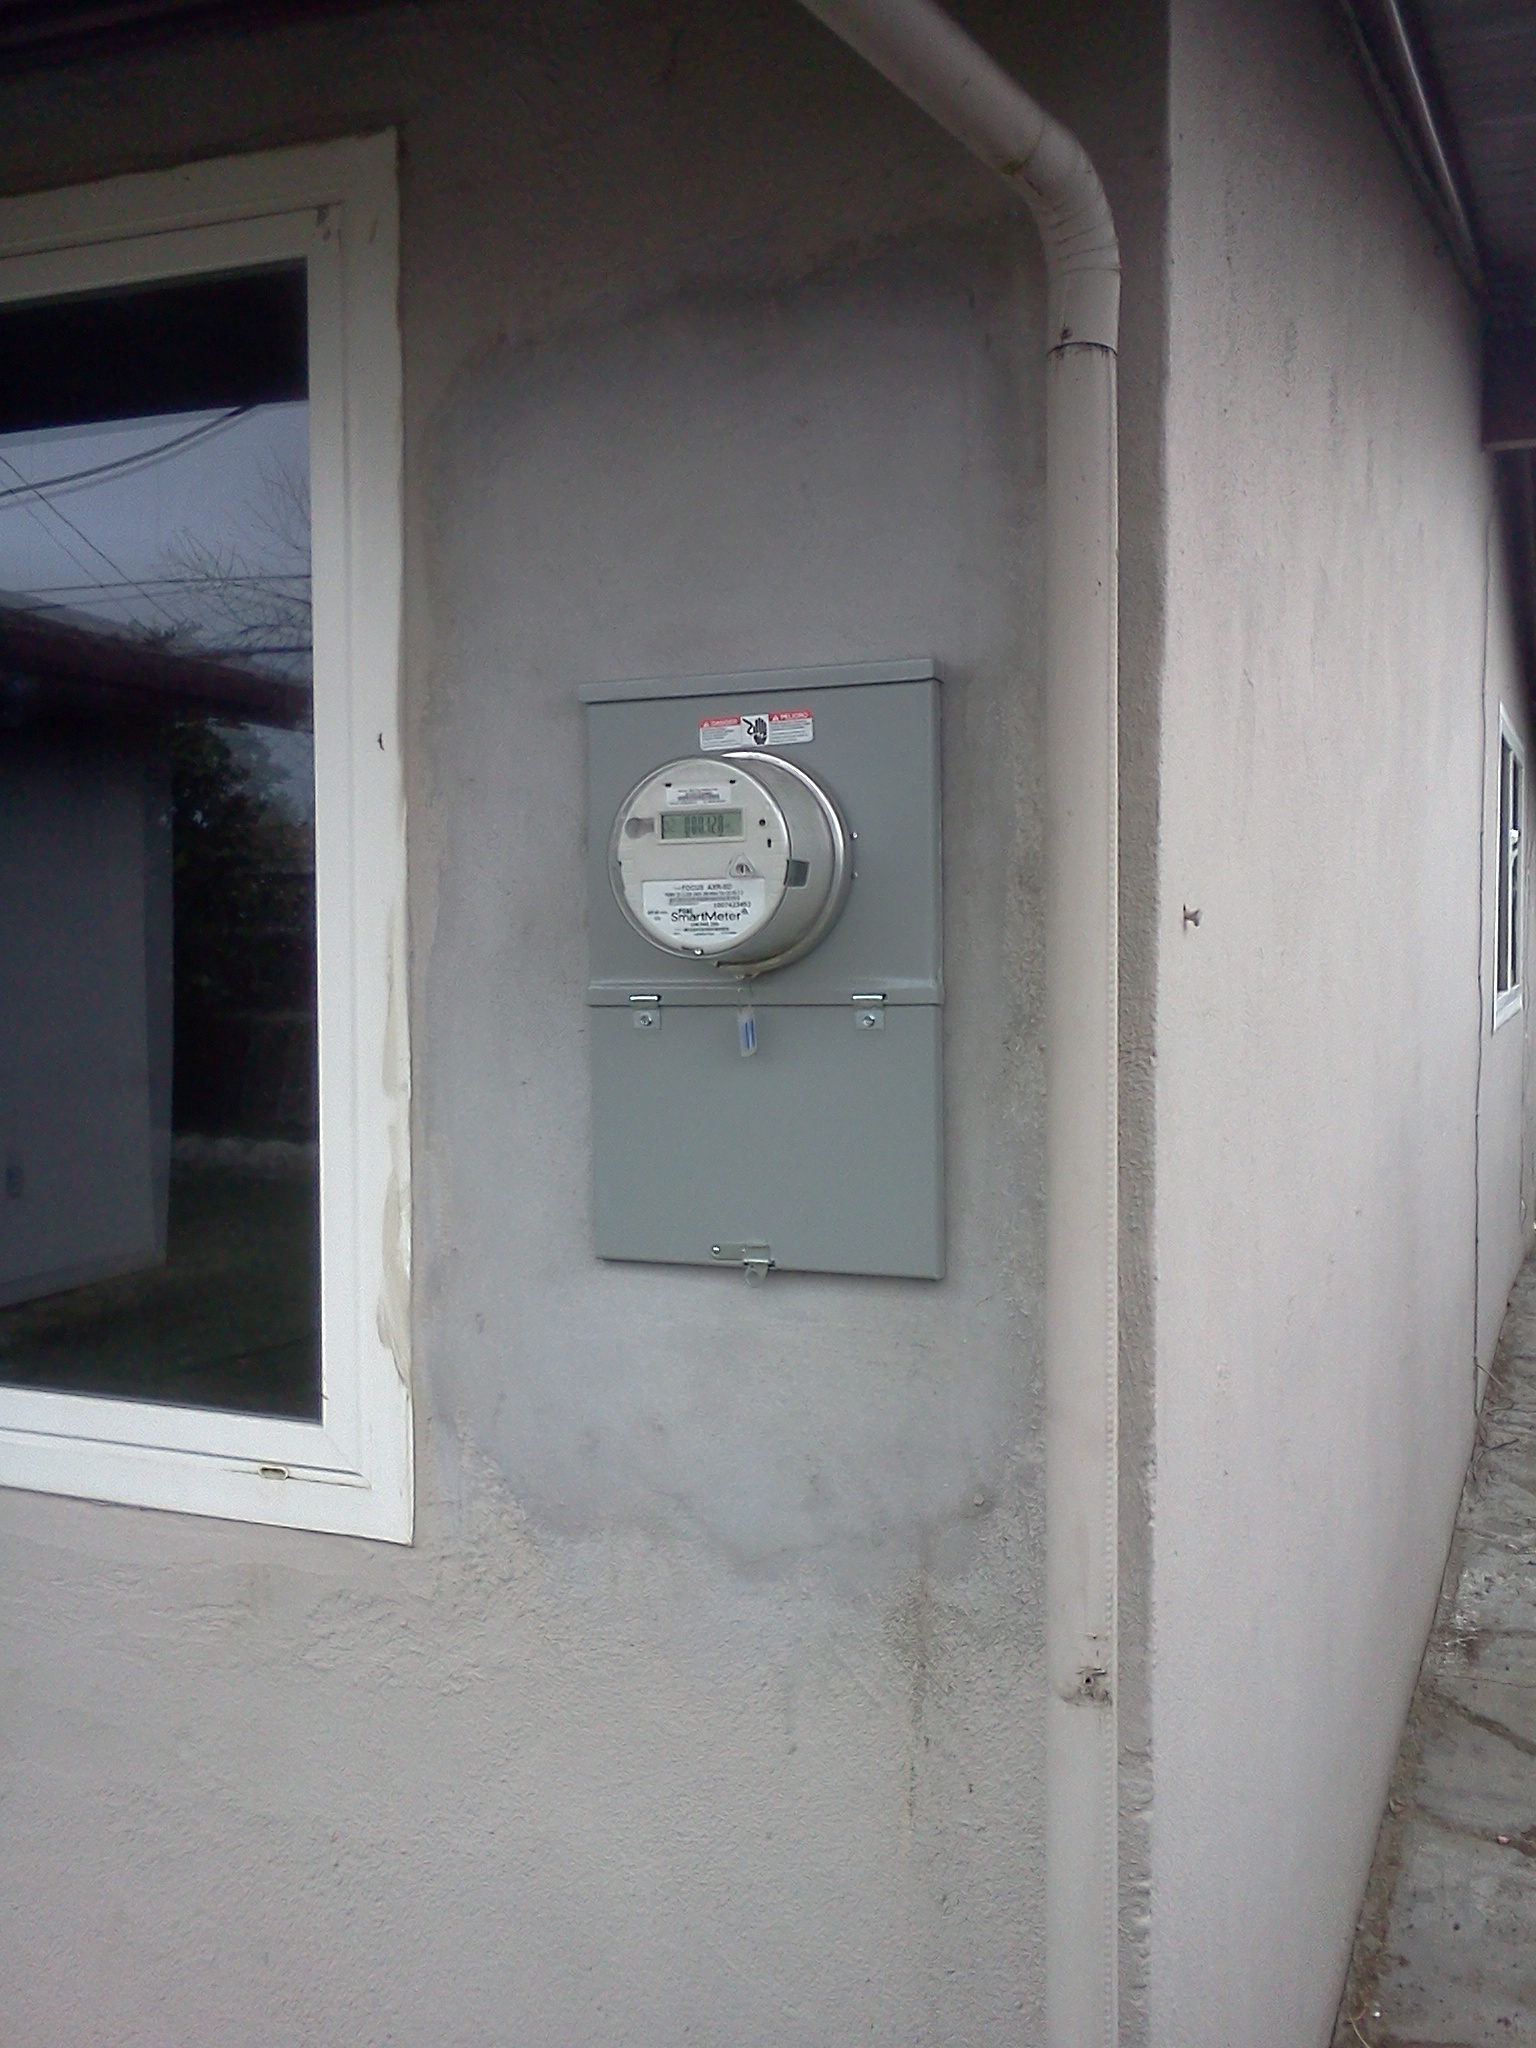 Roof Leak To Electrical Panel Via Flashing Building